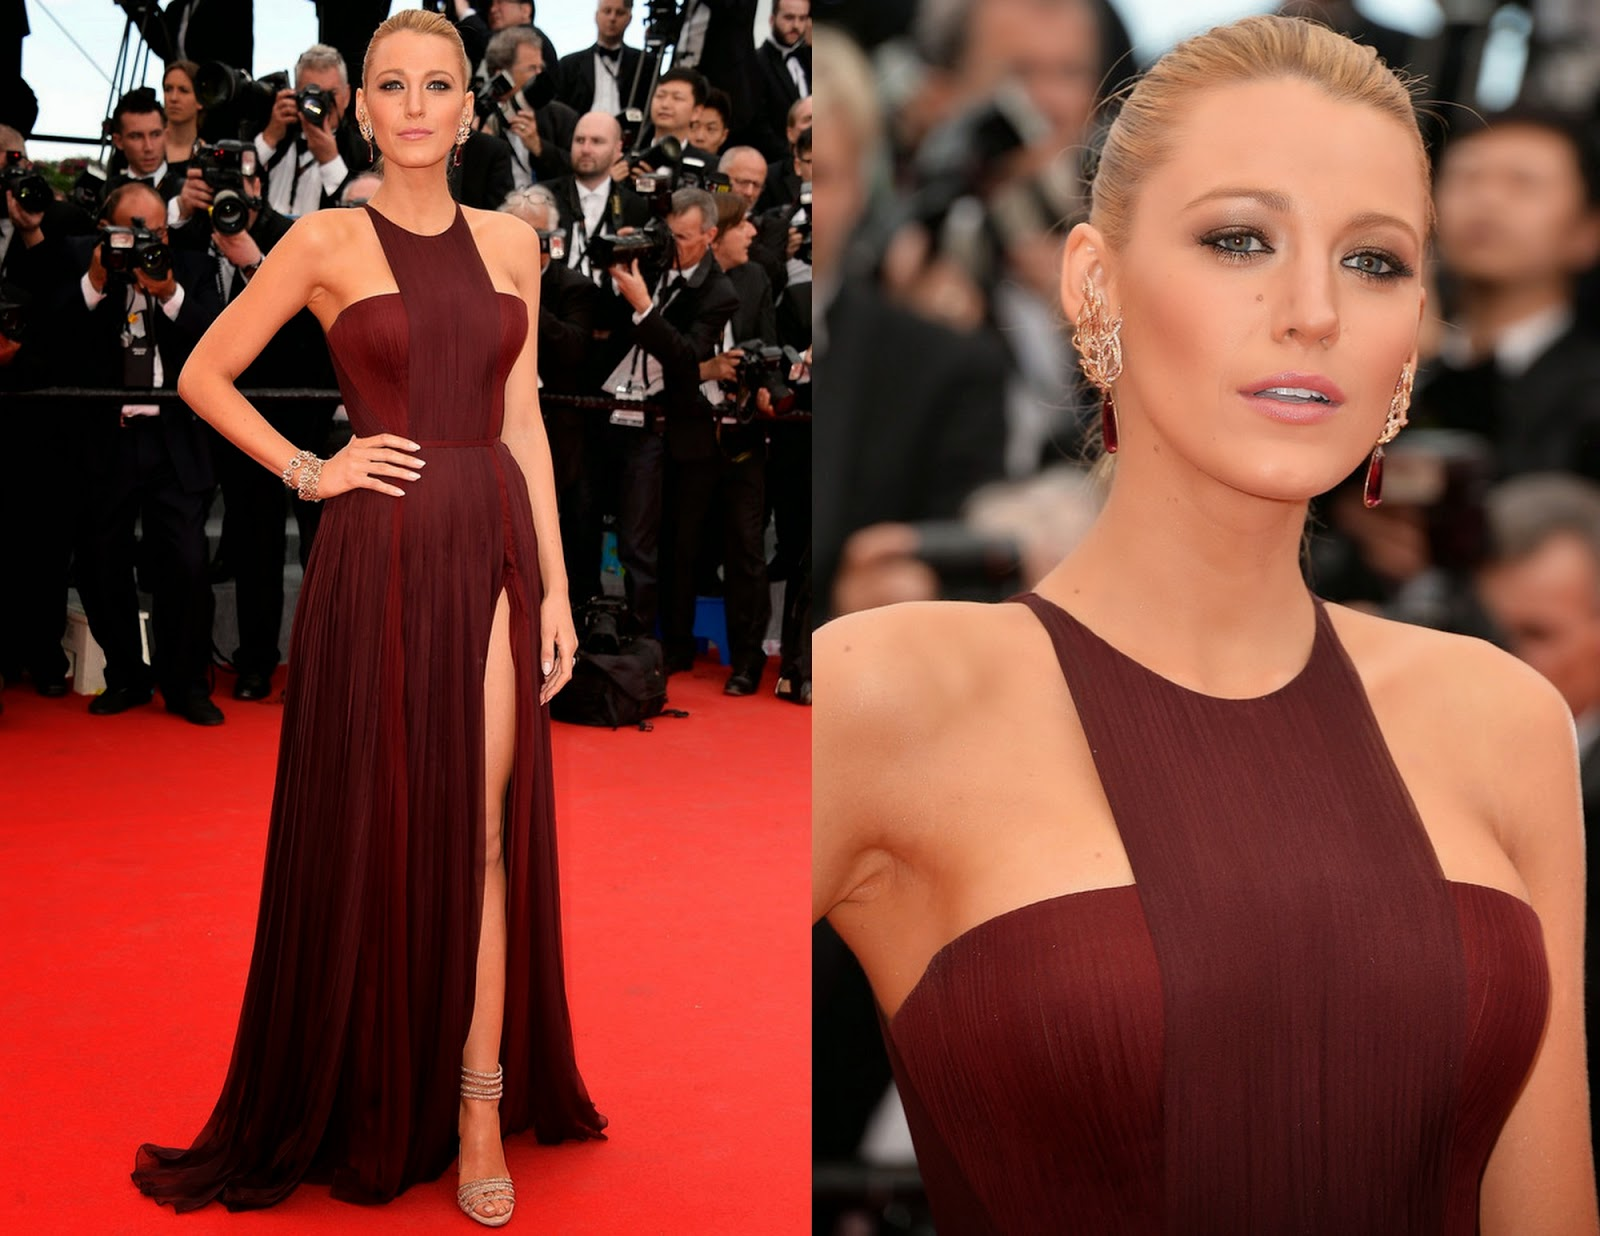 Blake Lively in Gucci, Cannes Film Festival 2014, Cannes fashion, Redcarpet Fashion 2014, Celebrity Fashion, Pakistan Fashion Blog, Top Trends 2014